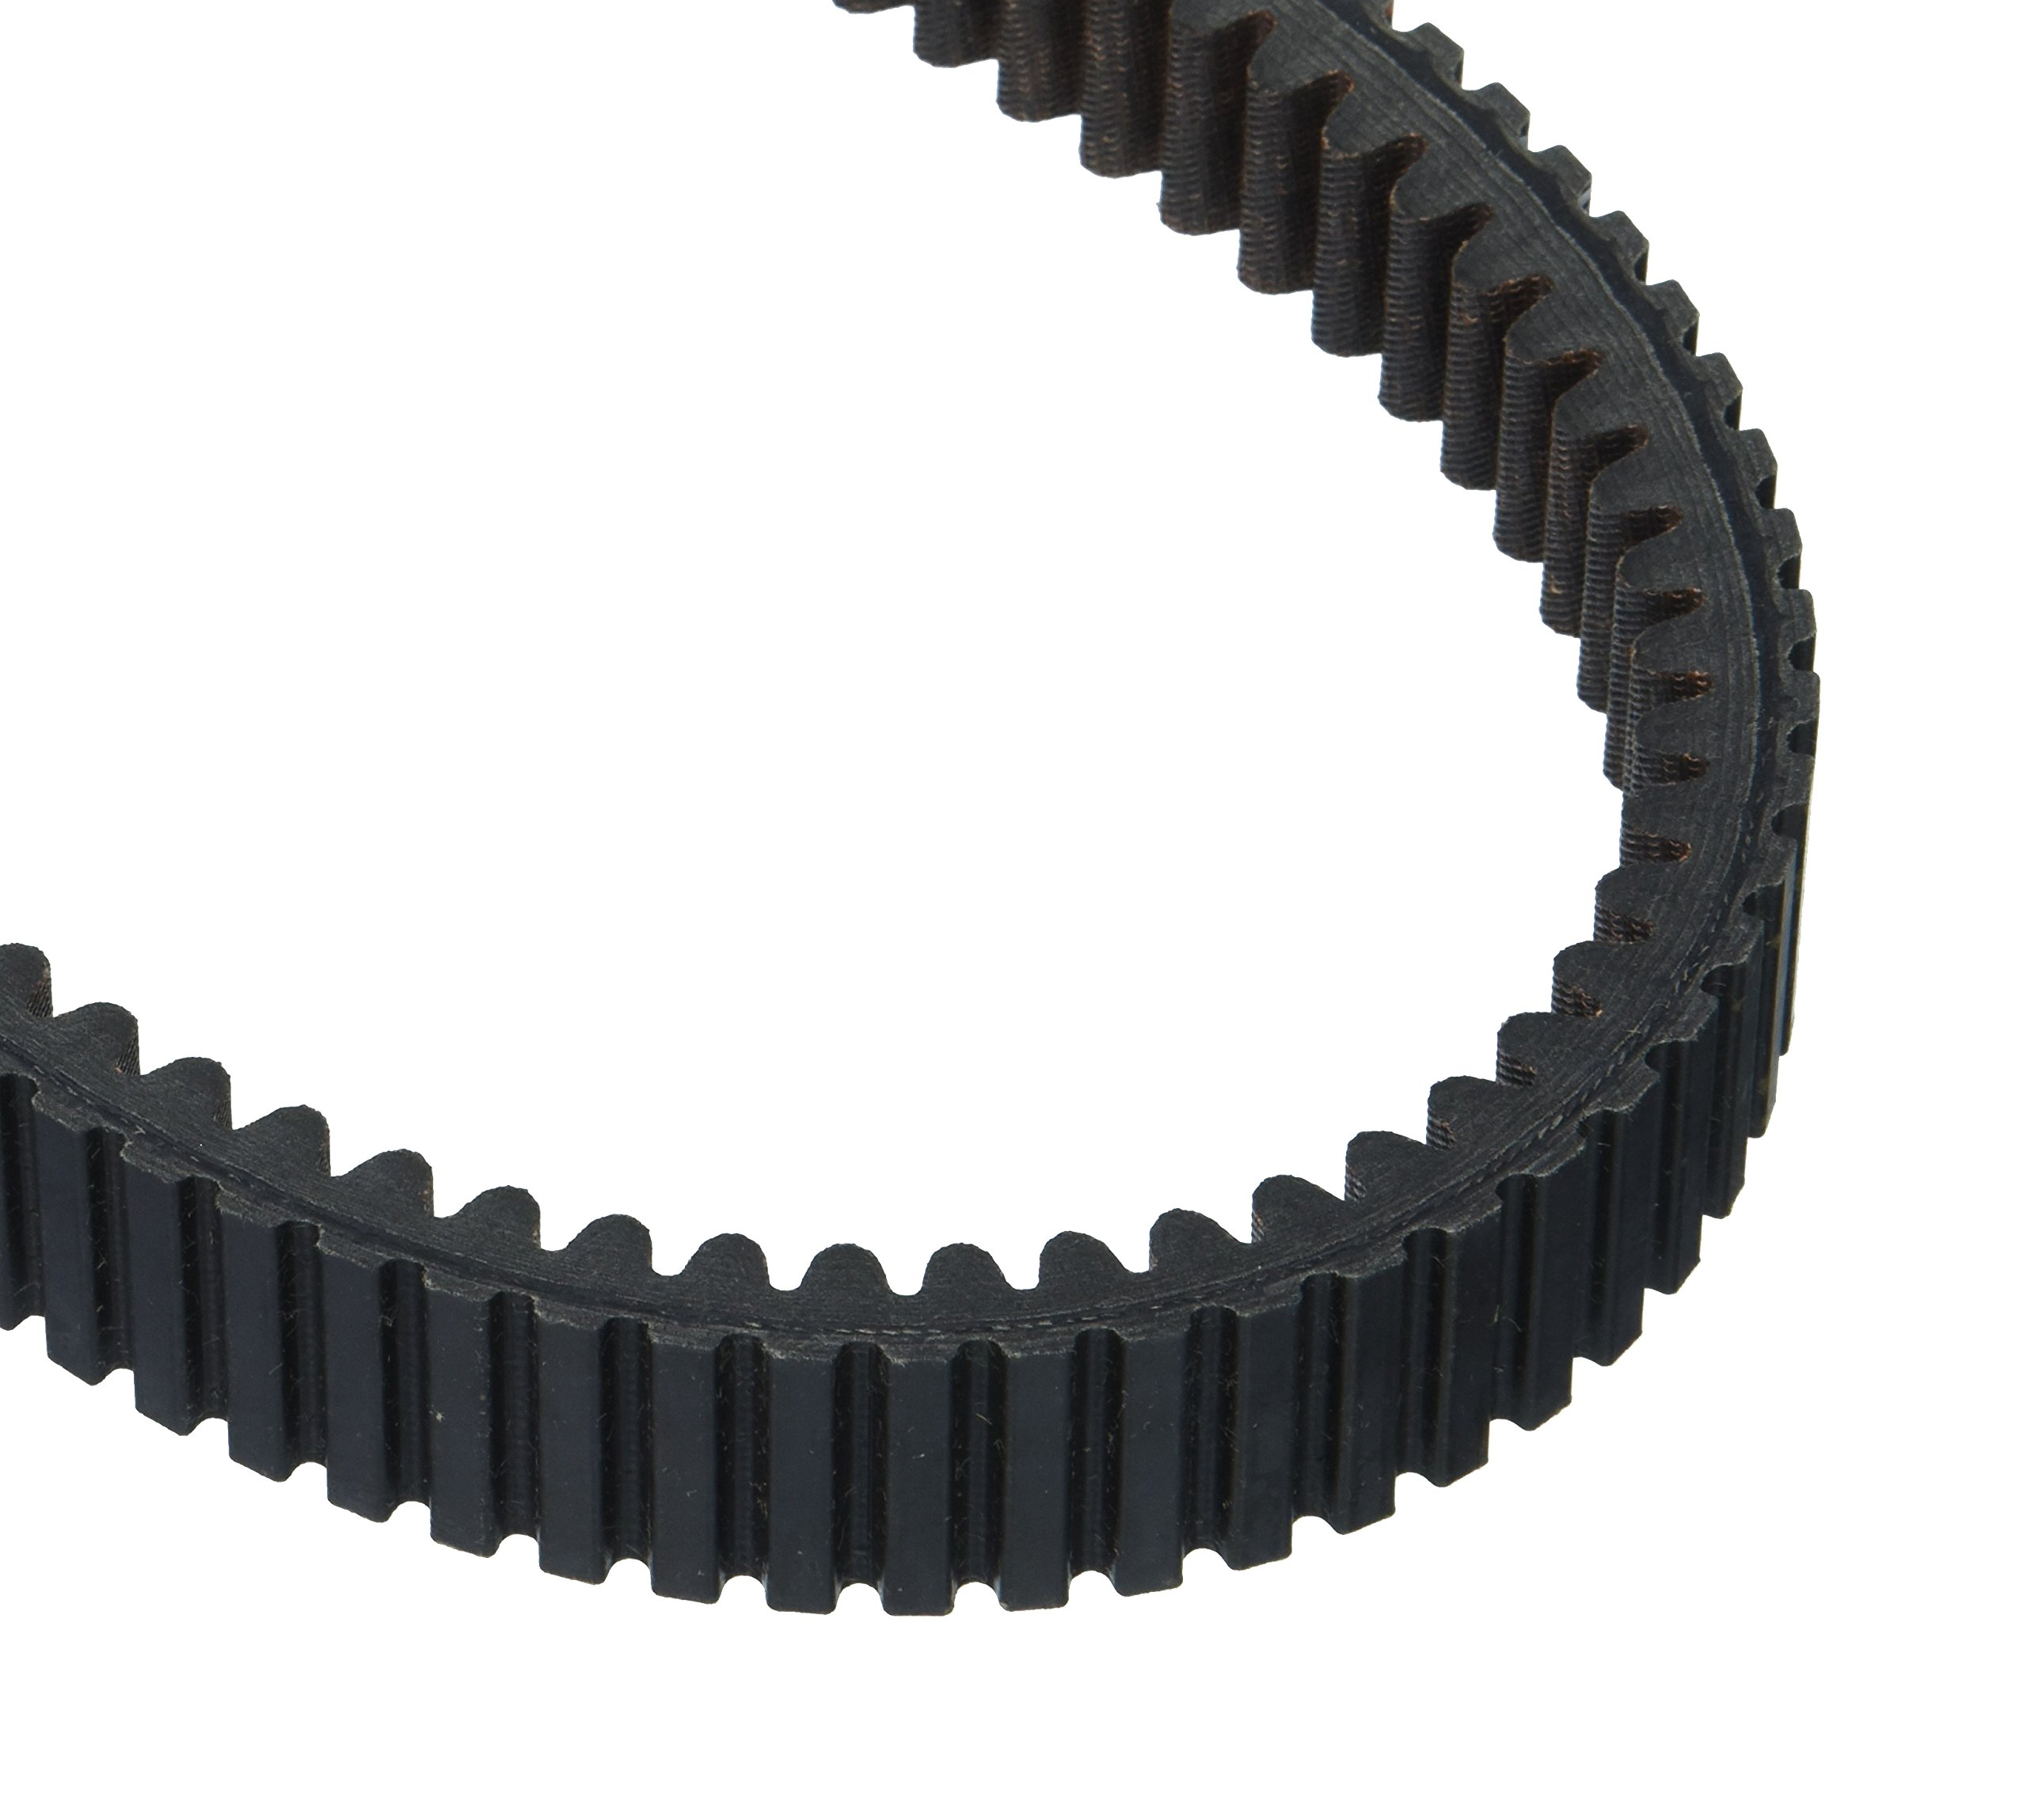 Gates 25G4108 G-Force Drive Belt Polaris 1000 General 2016-2017